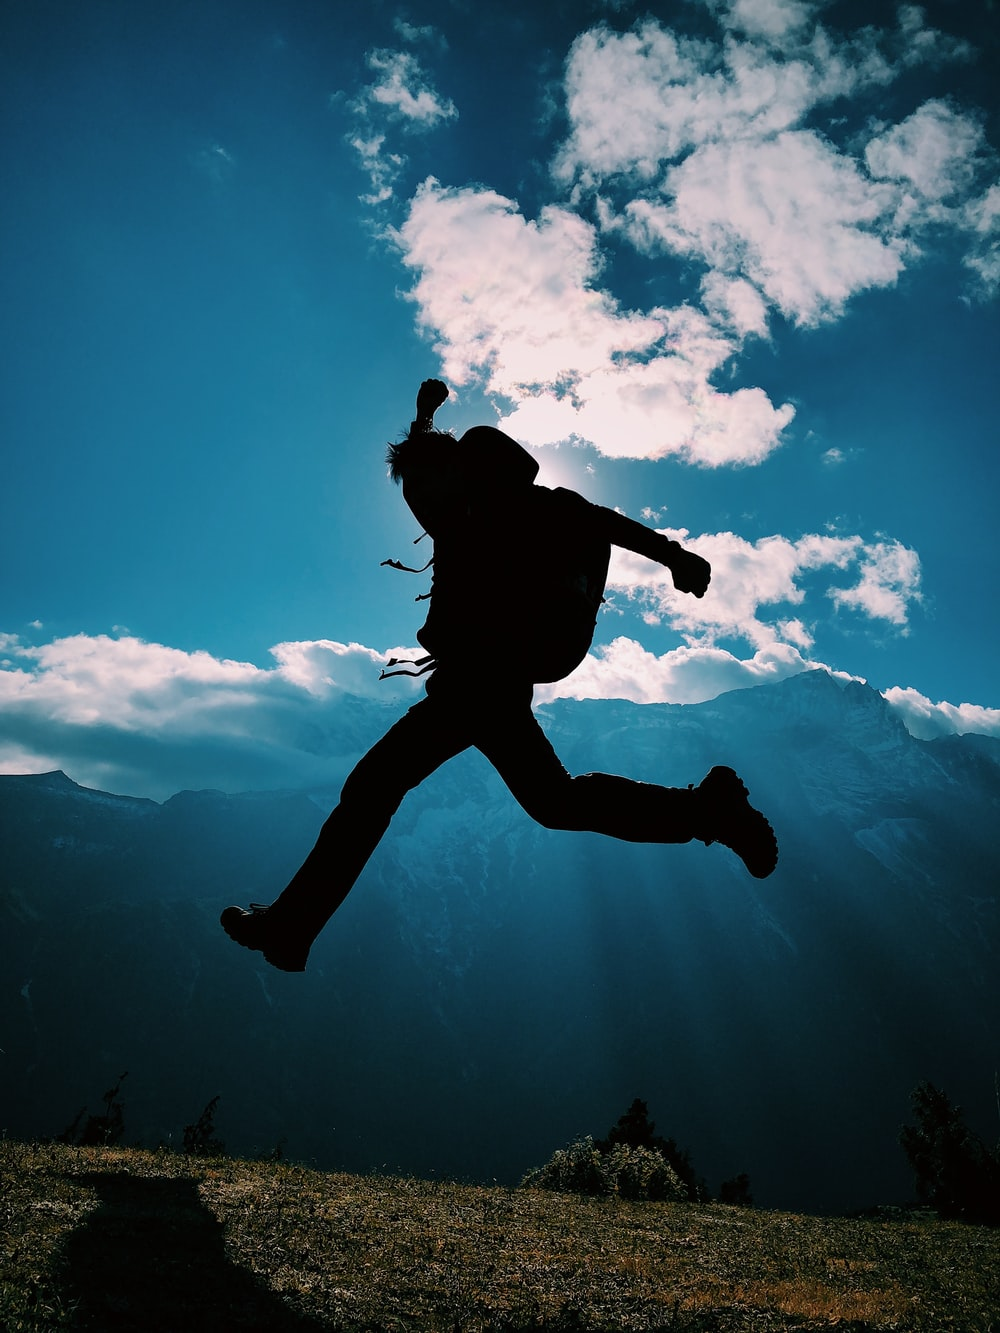 silhouette of person jumping on mountain